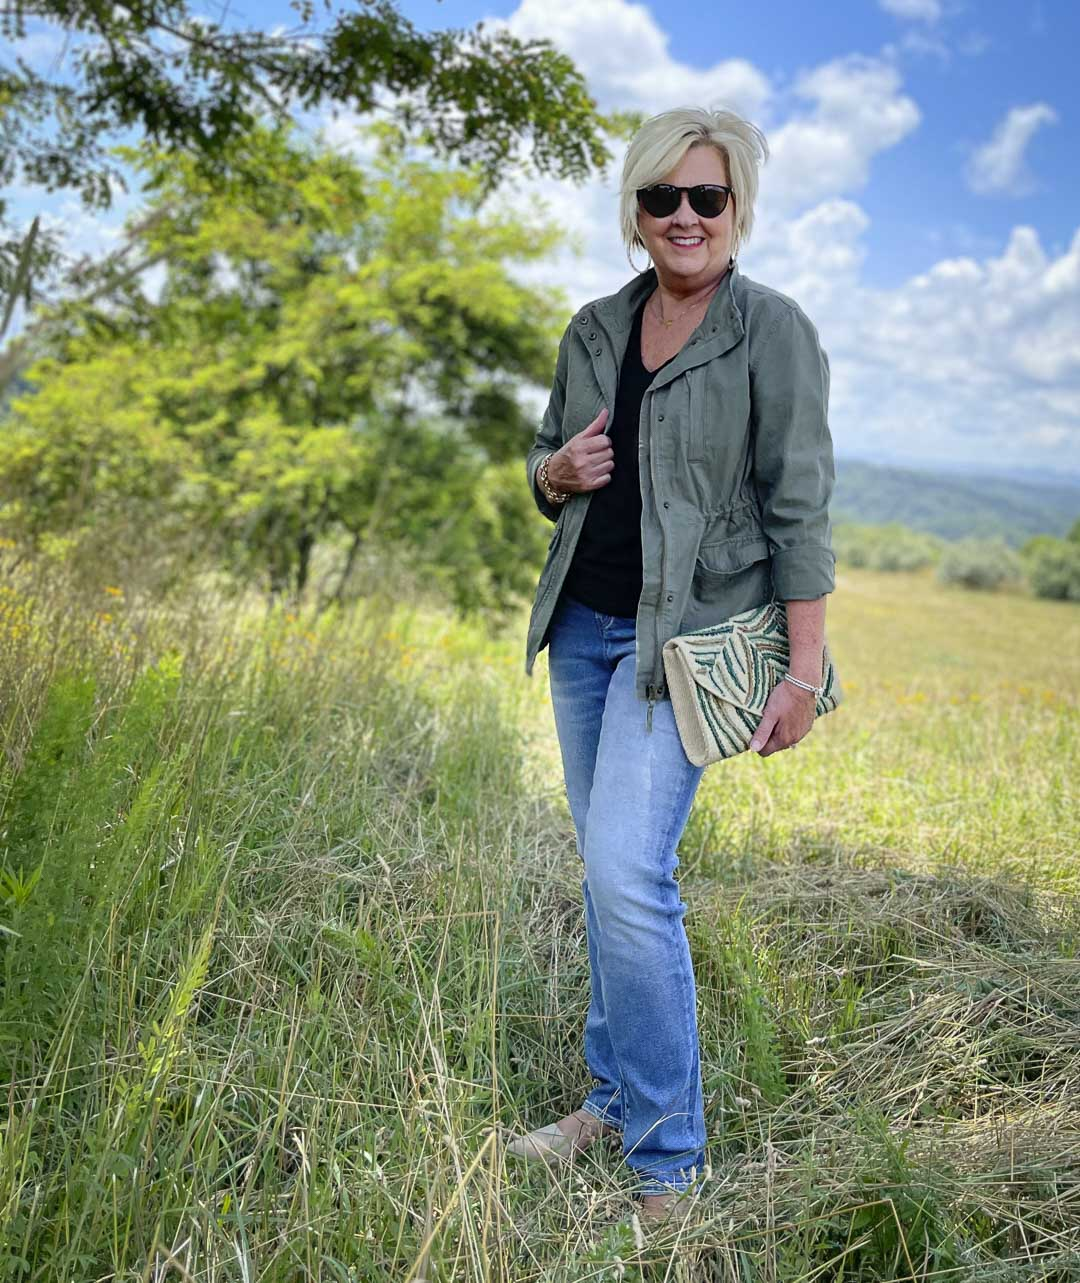 Fashion Blogger 50 Is Not Old is wearing black and olive together with jeans, Ray-Ban sunglasses, and an embroidered clutch